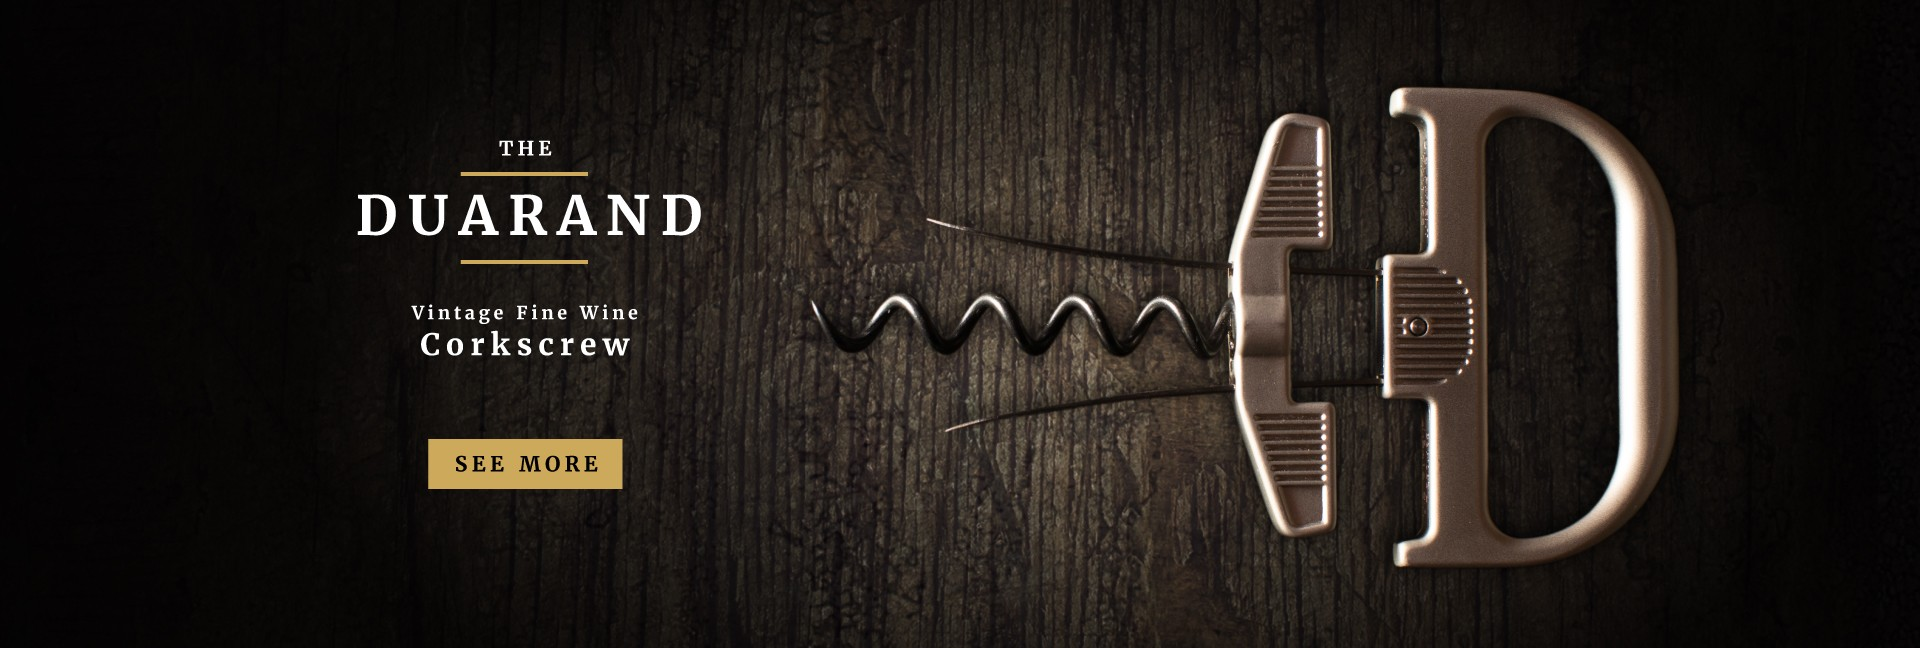 The Durand - Vintage Fine Wine Corkscrew